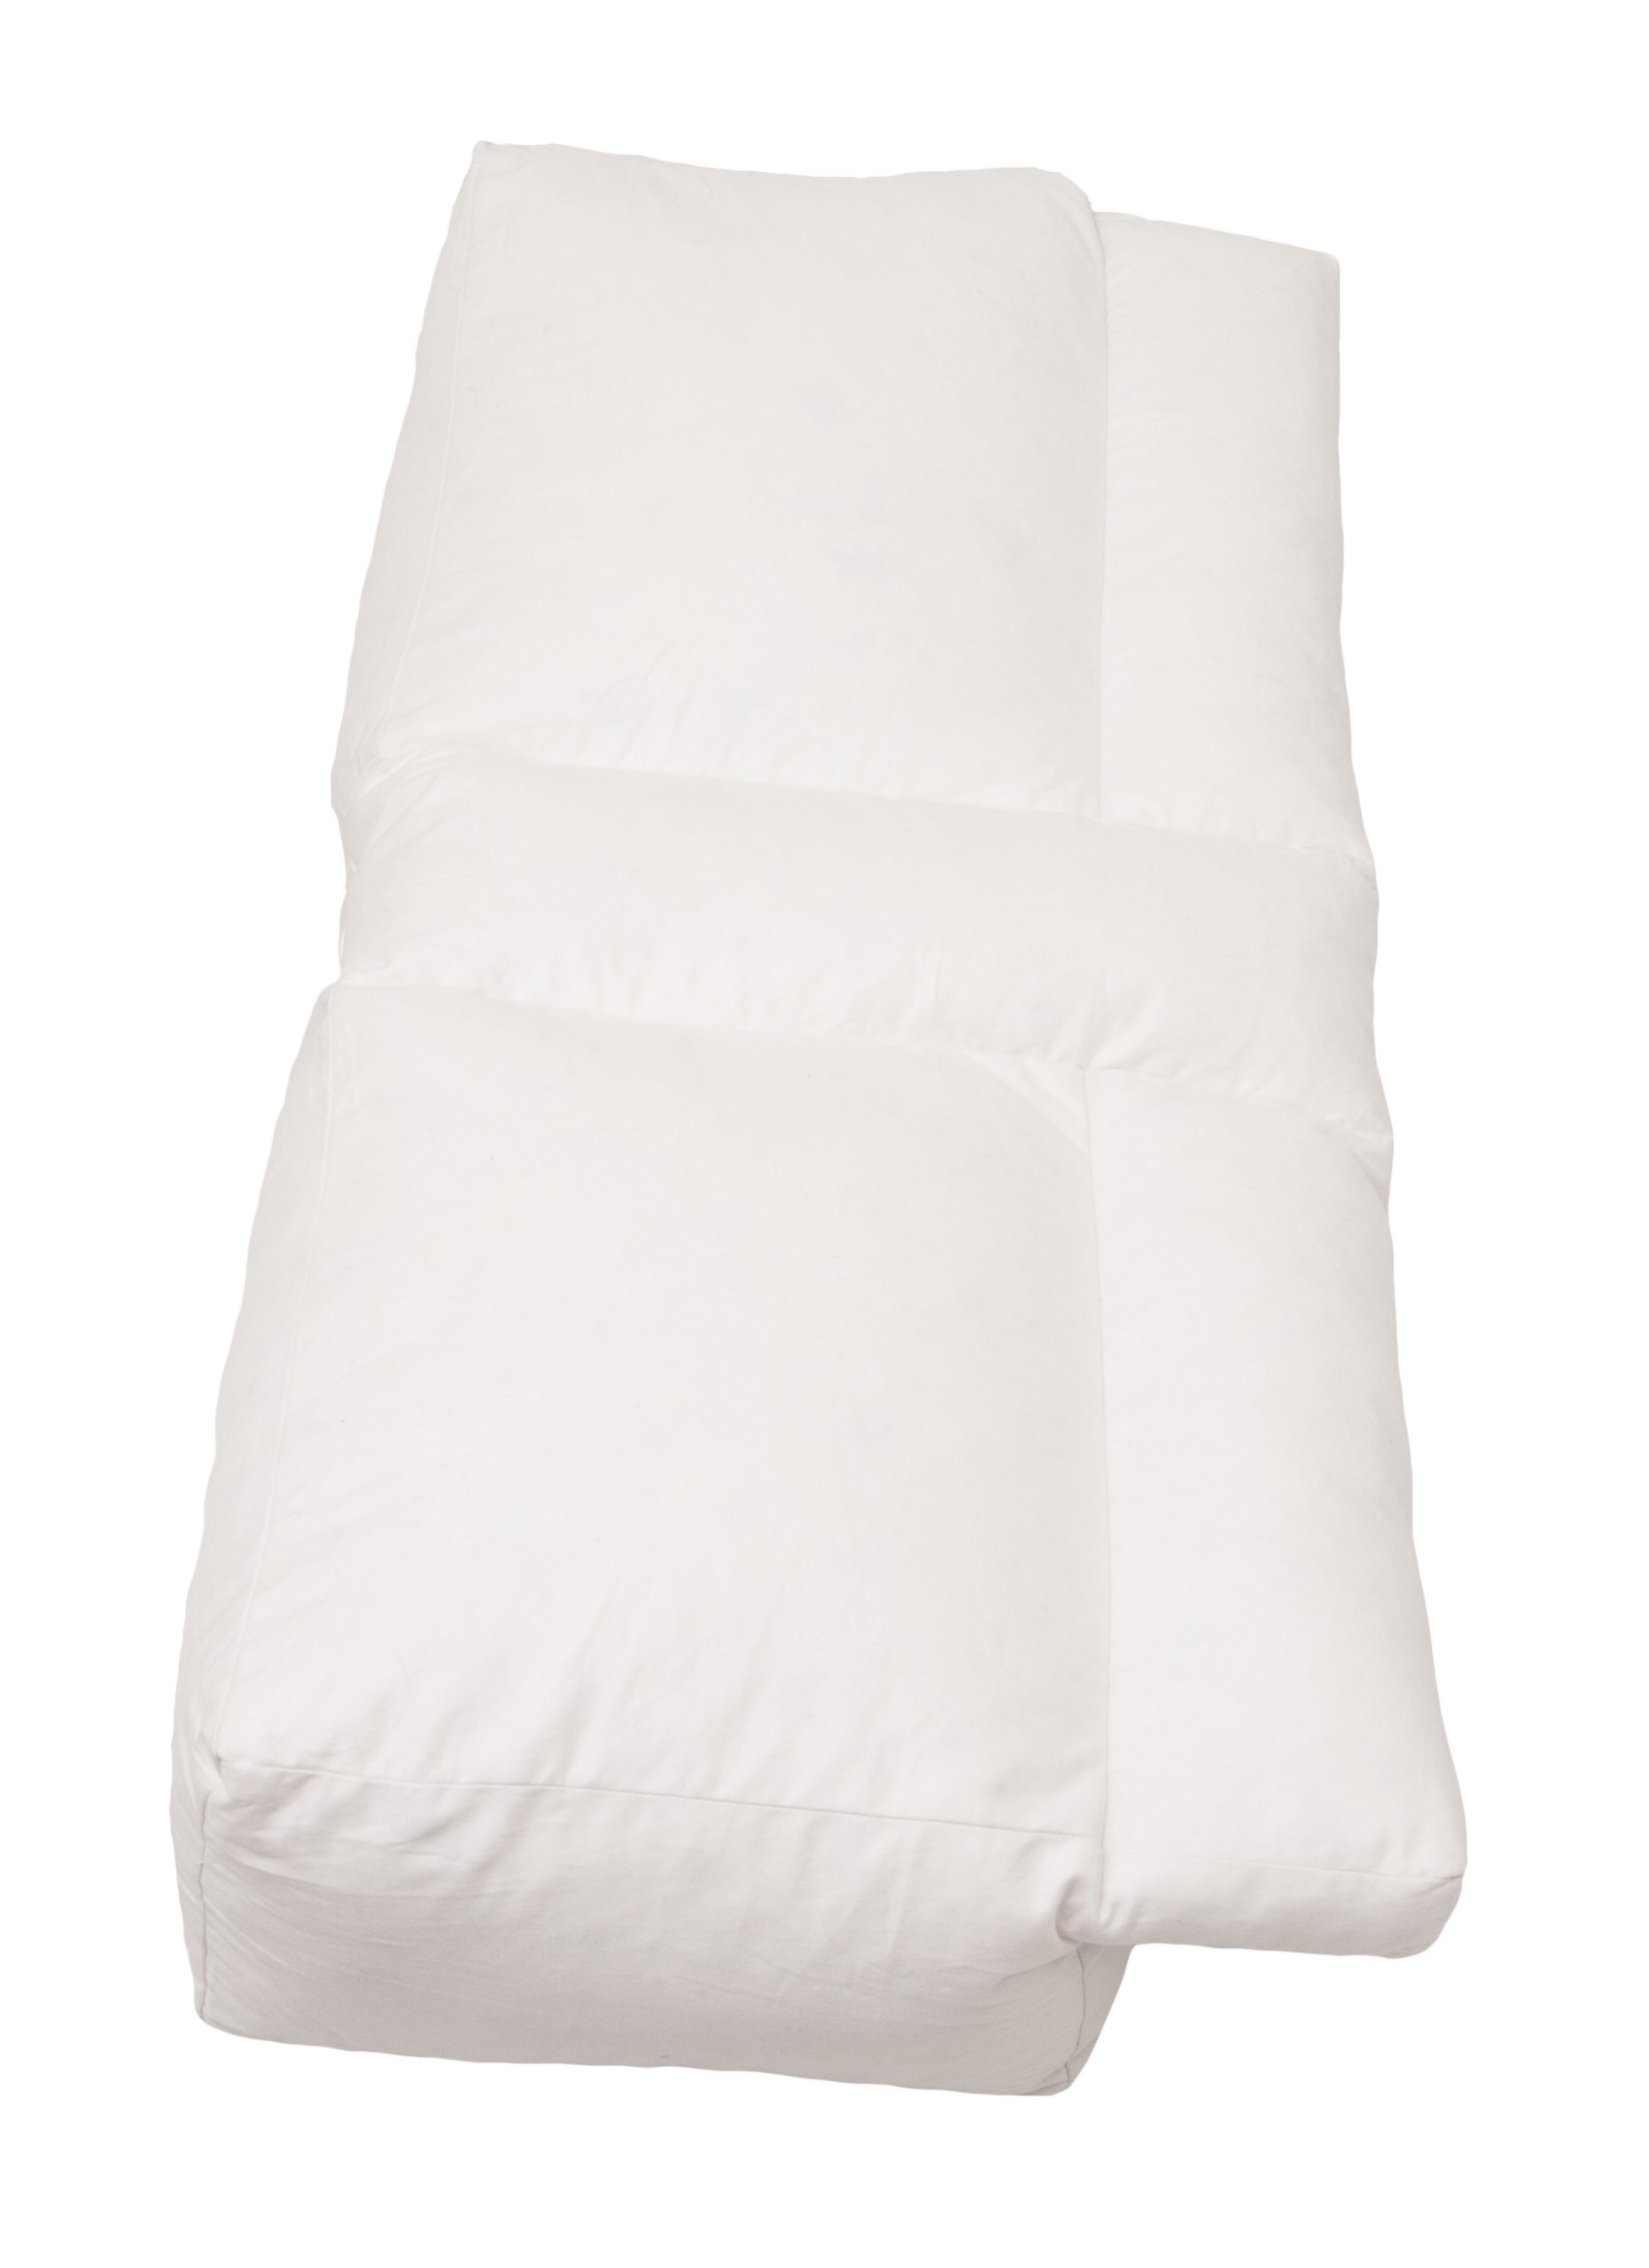 Better Sleep Pillow Goose Down Pillow - Patented Arm-Tunnel Design Improves Hand And Arm Circulation - Neck Pain Relief - Perfect Side And Stomach Sleeper Pillow - Bed Pillow, White